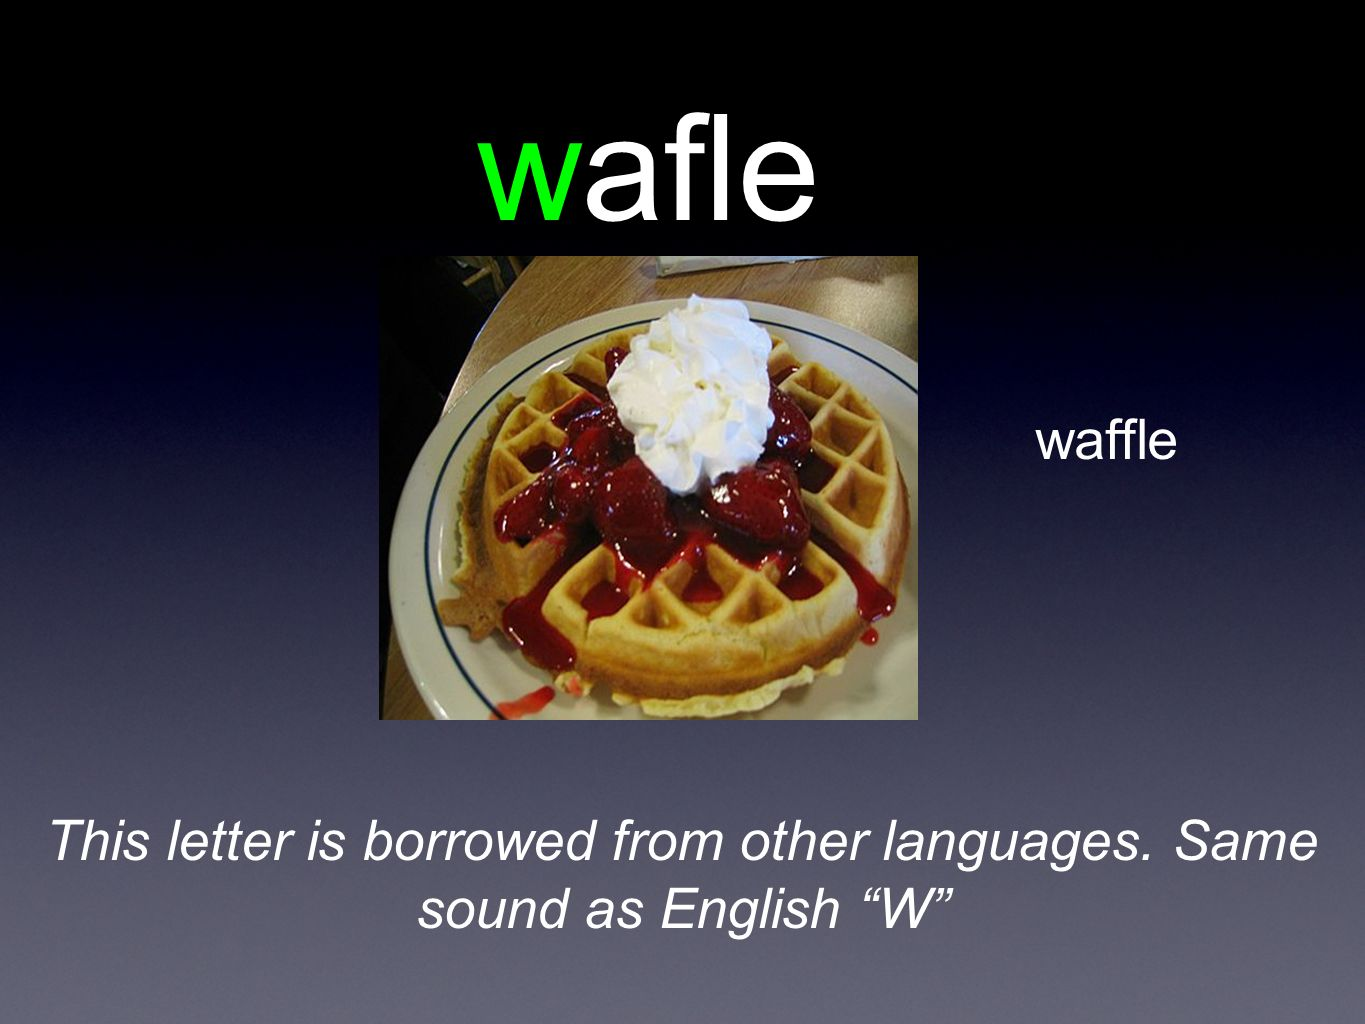 wafle waffle This letter is borrowed from other languages. Same sound as English W